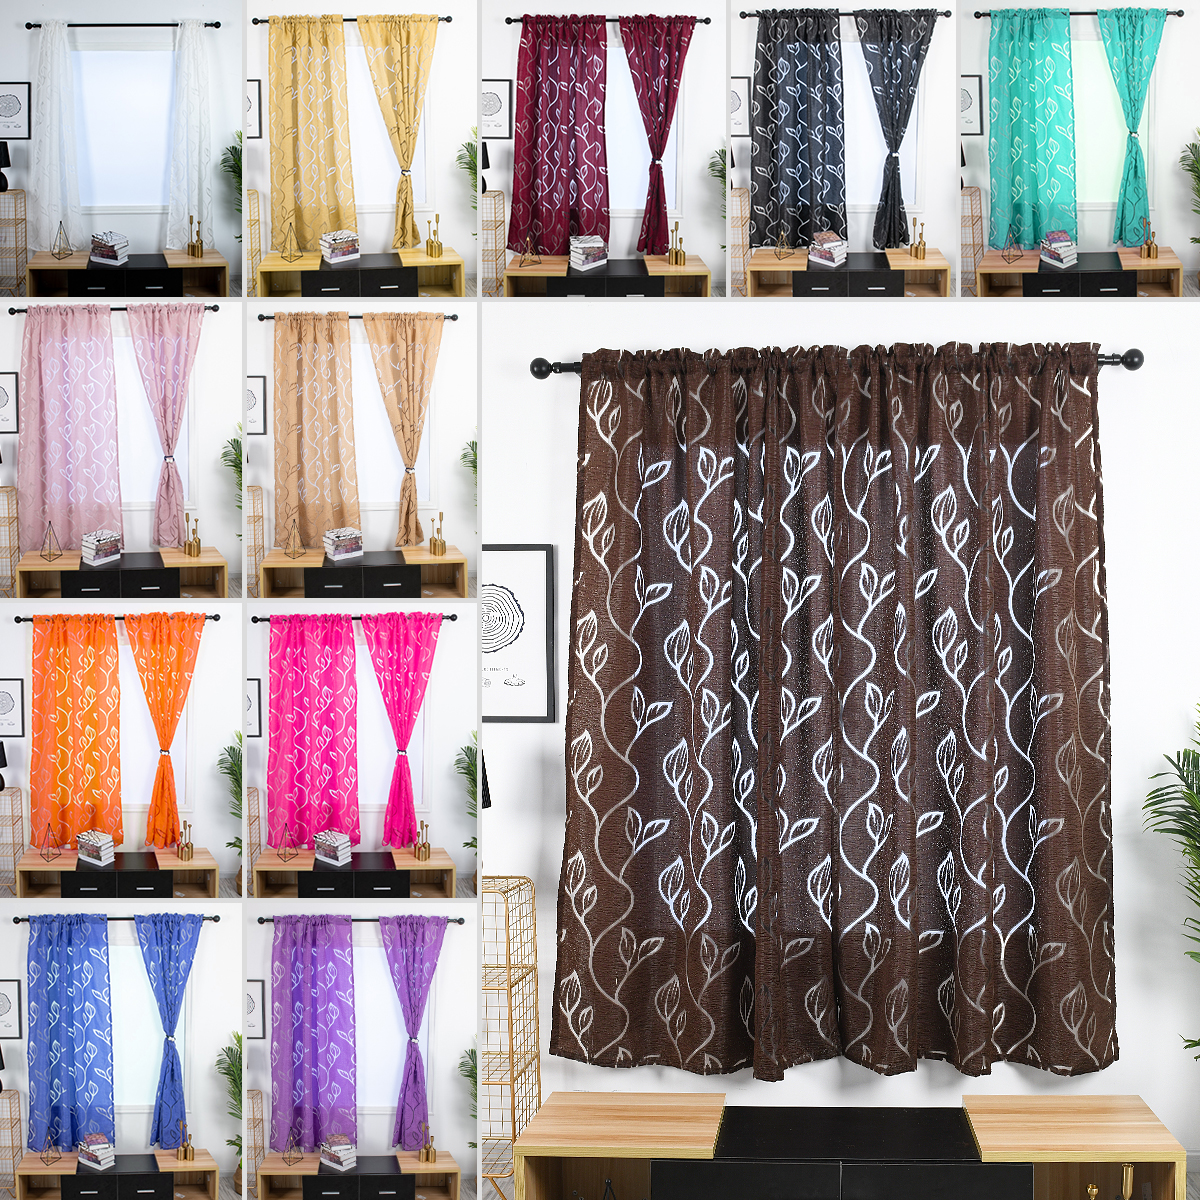 Flower Printed Sheer Hollowed Curtains Shading Window Drape For Bedroom 1 Piece Ebay